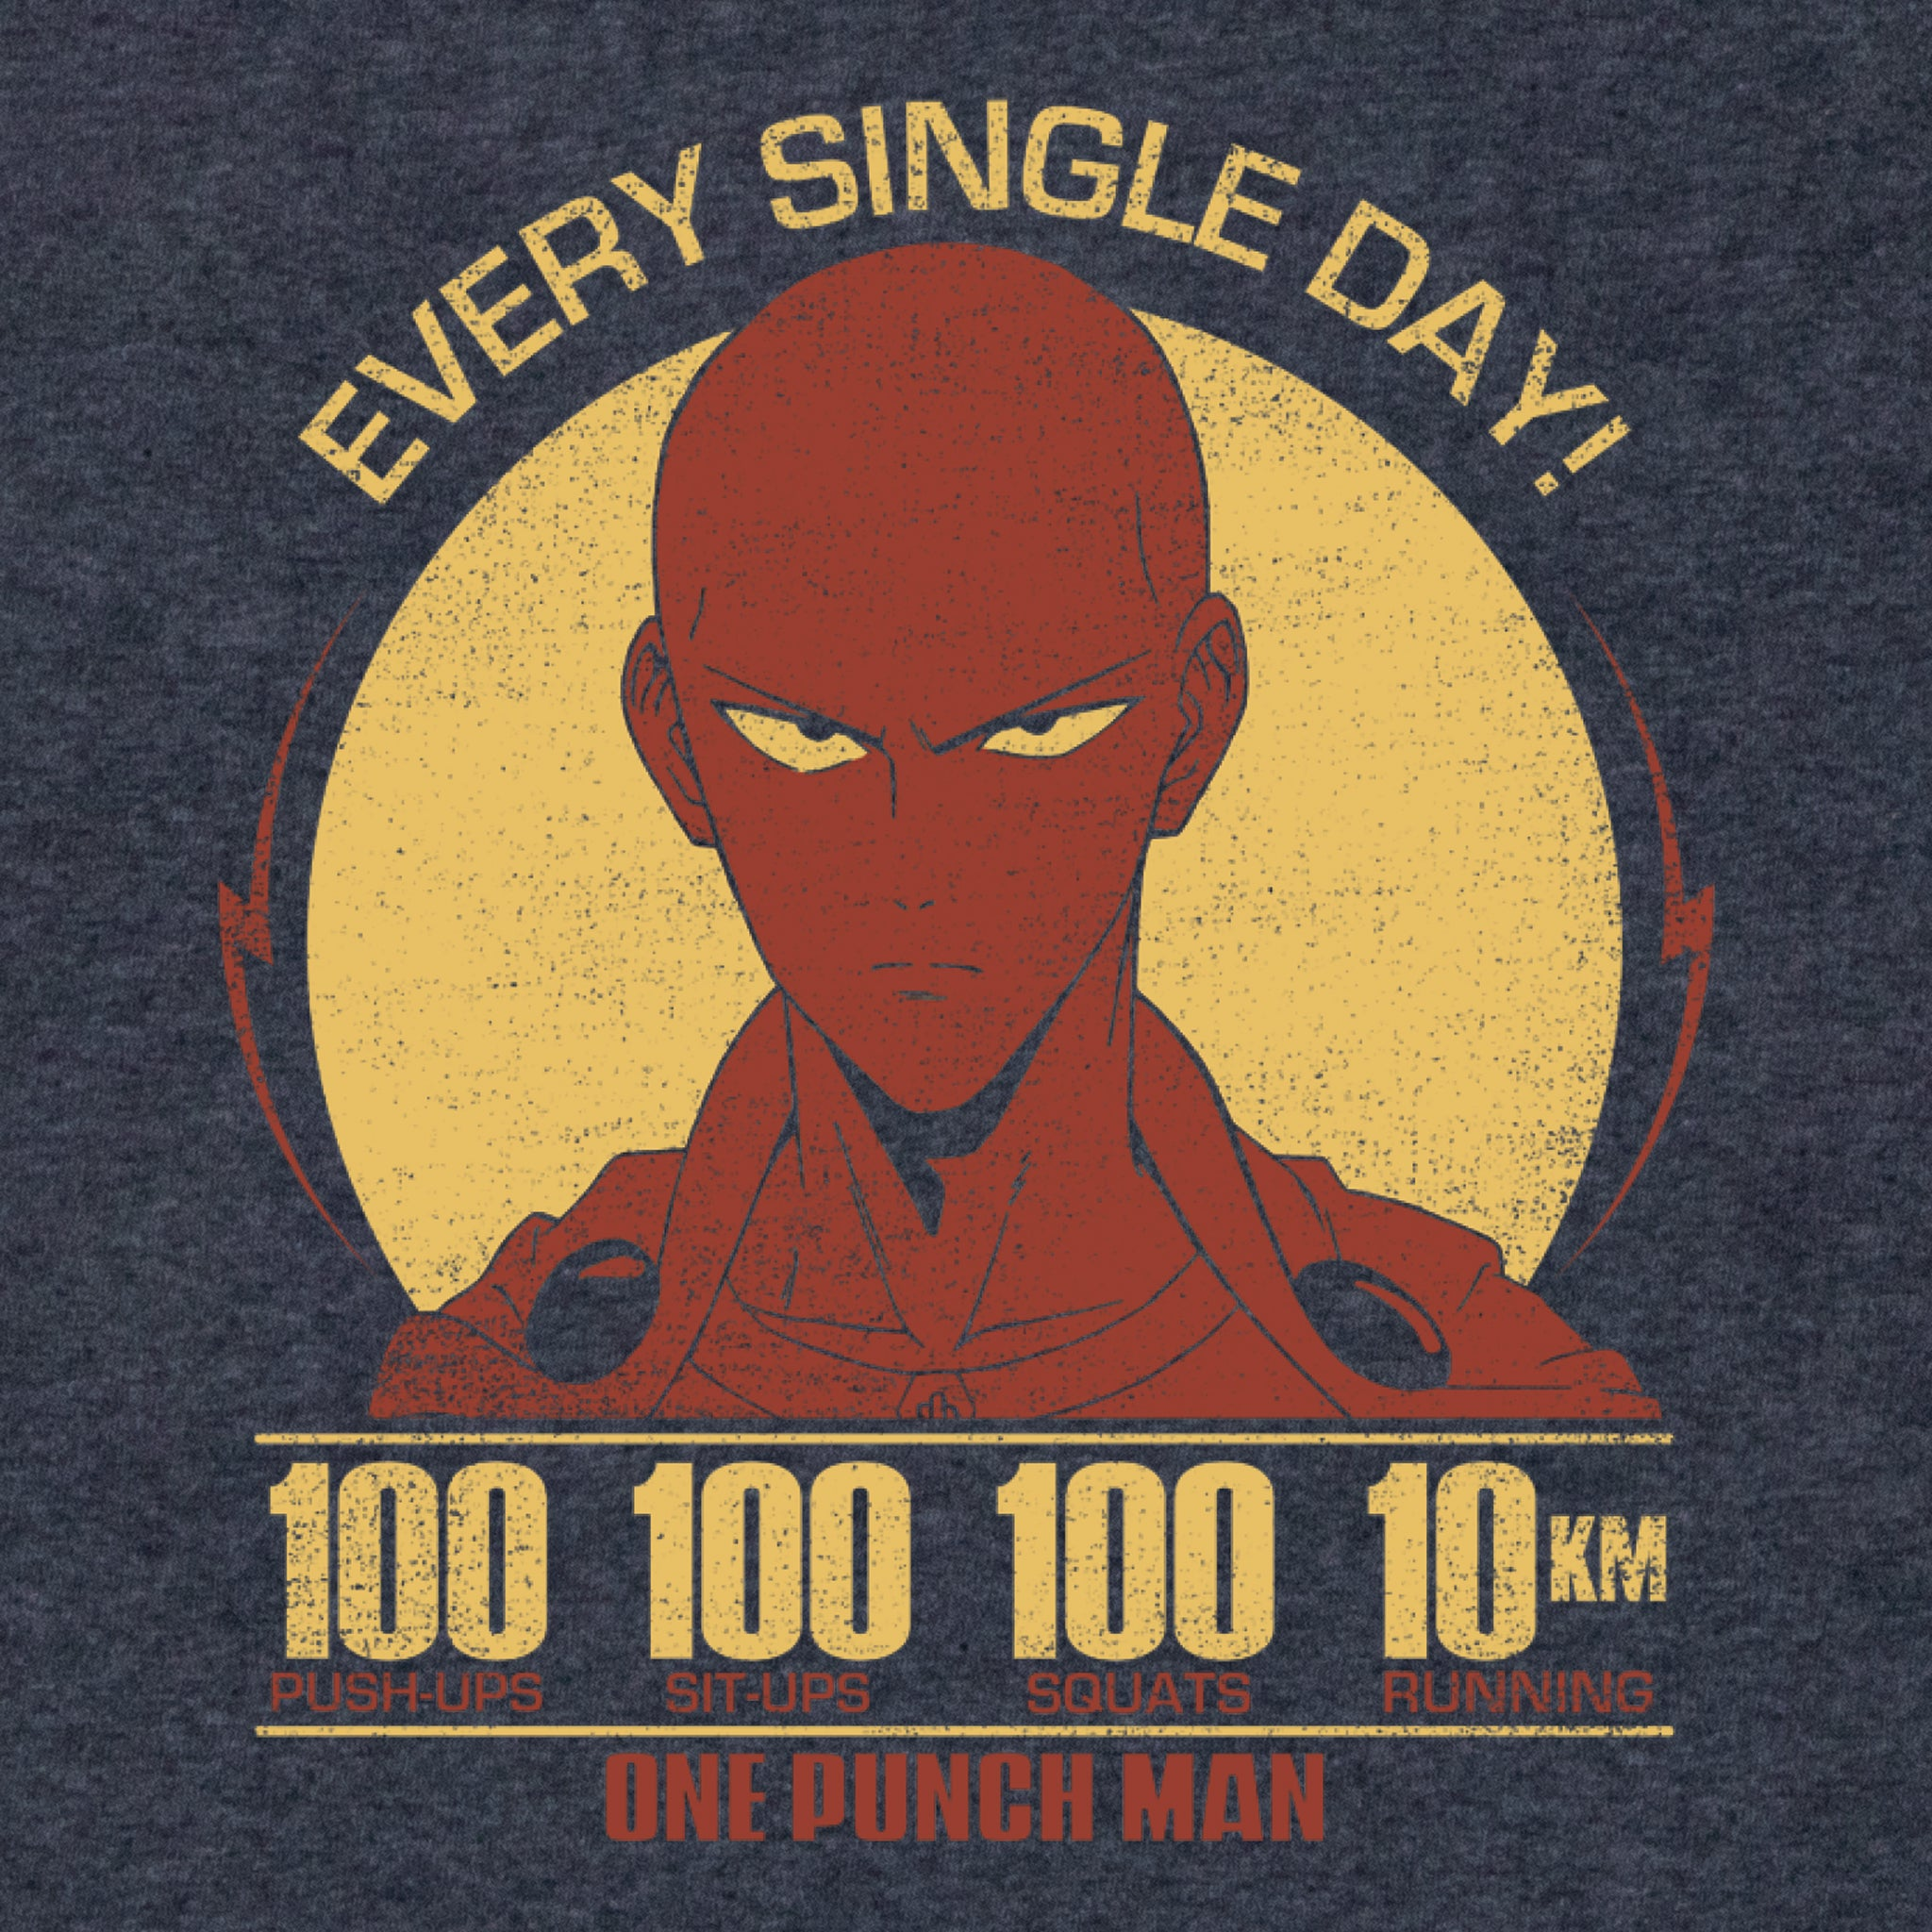 one punch man saitama anime graphic t-shirt apparel shirt culturefly